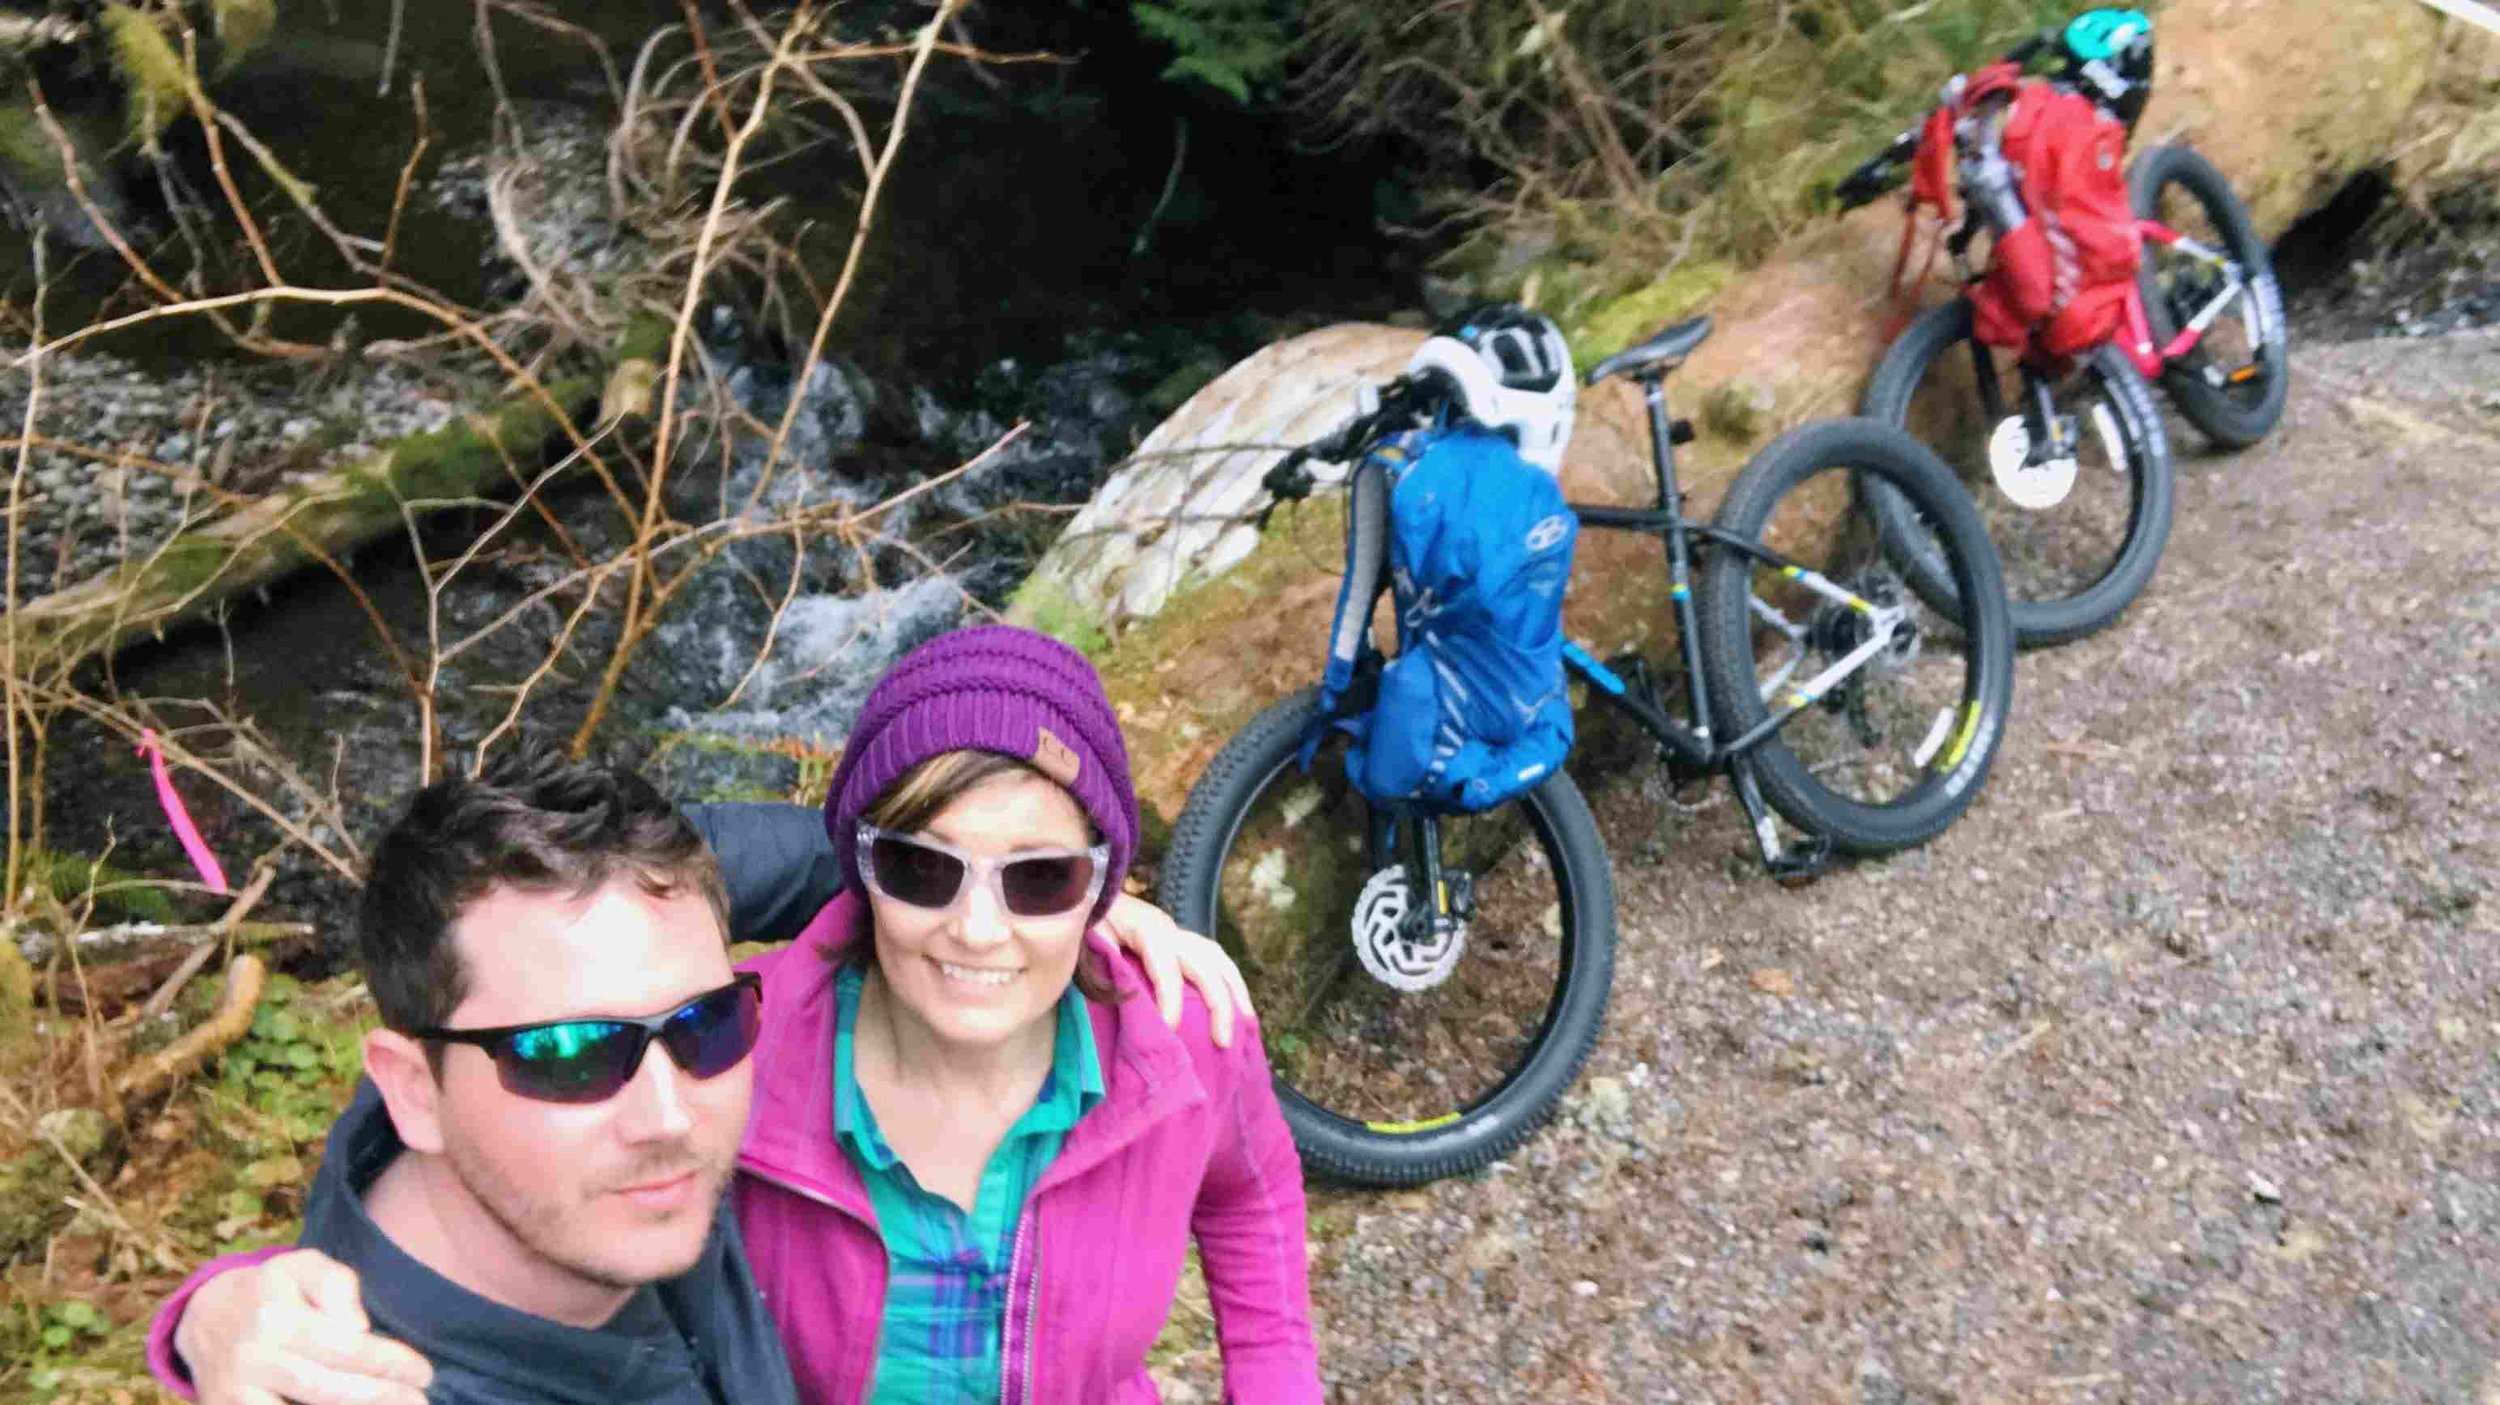 Our Jamis Bikes on Carbon River Road. Sorry about the blurry photo :-p